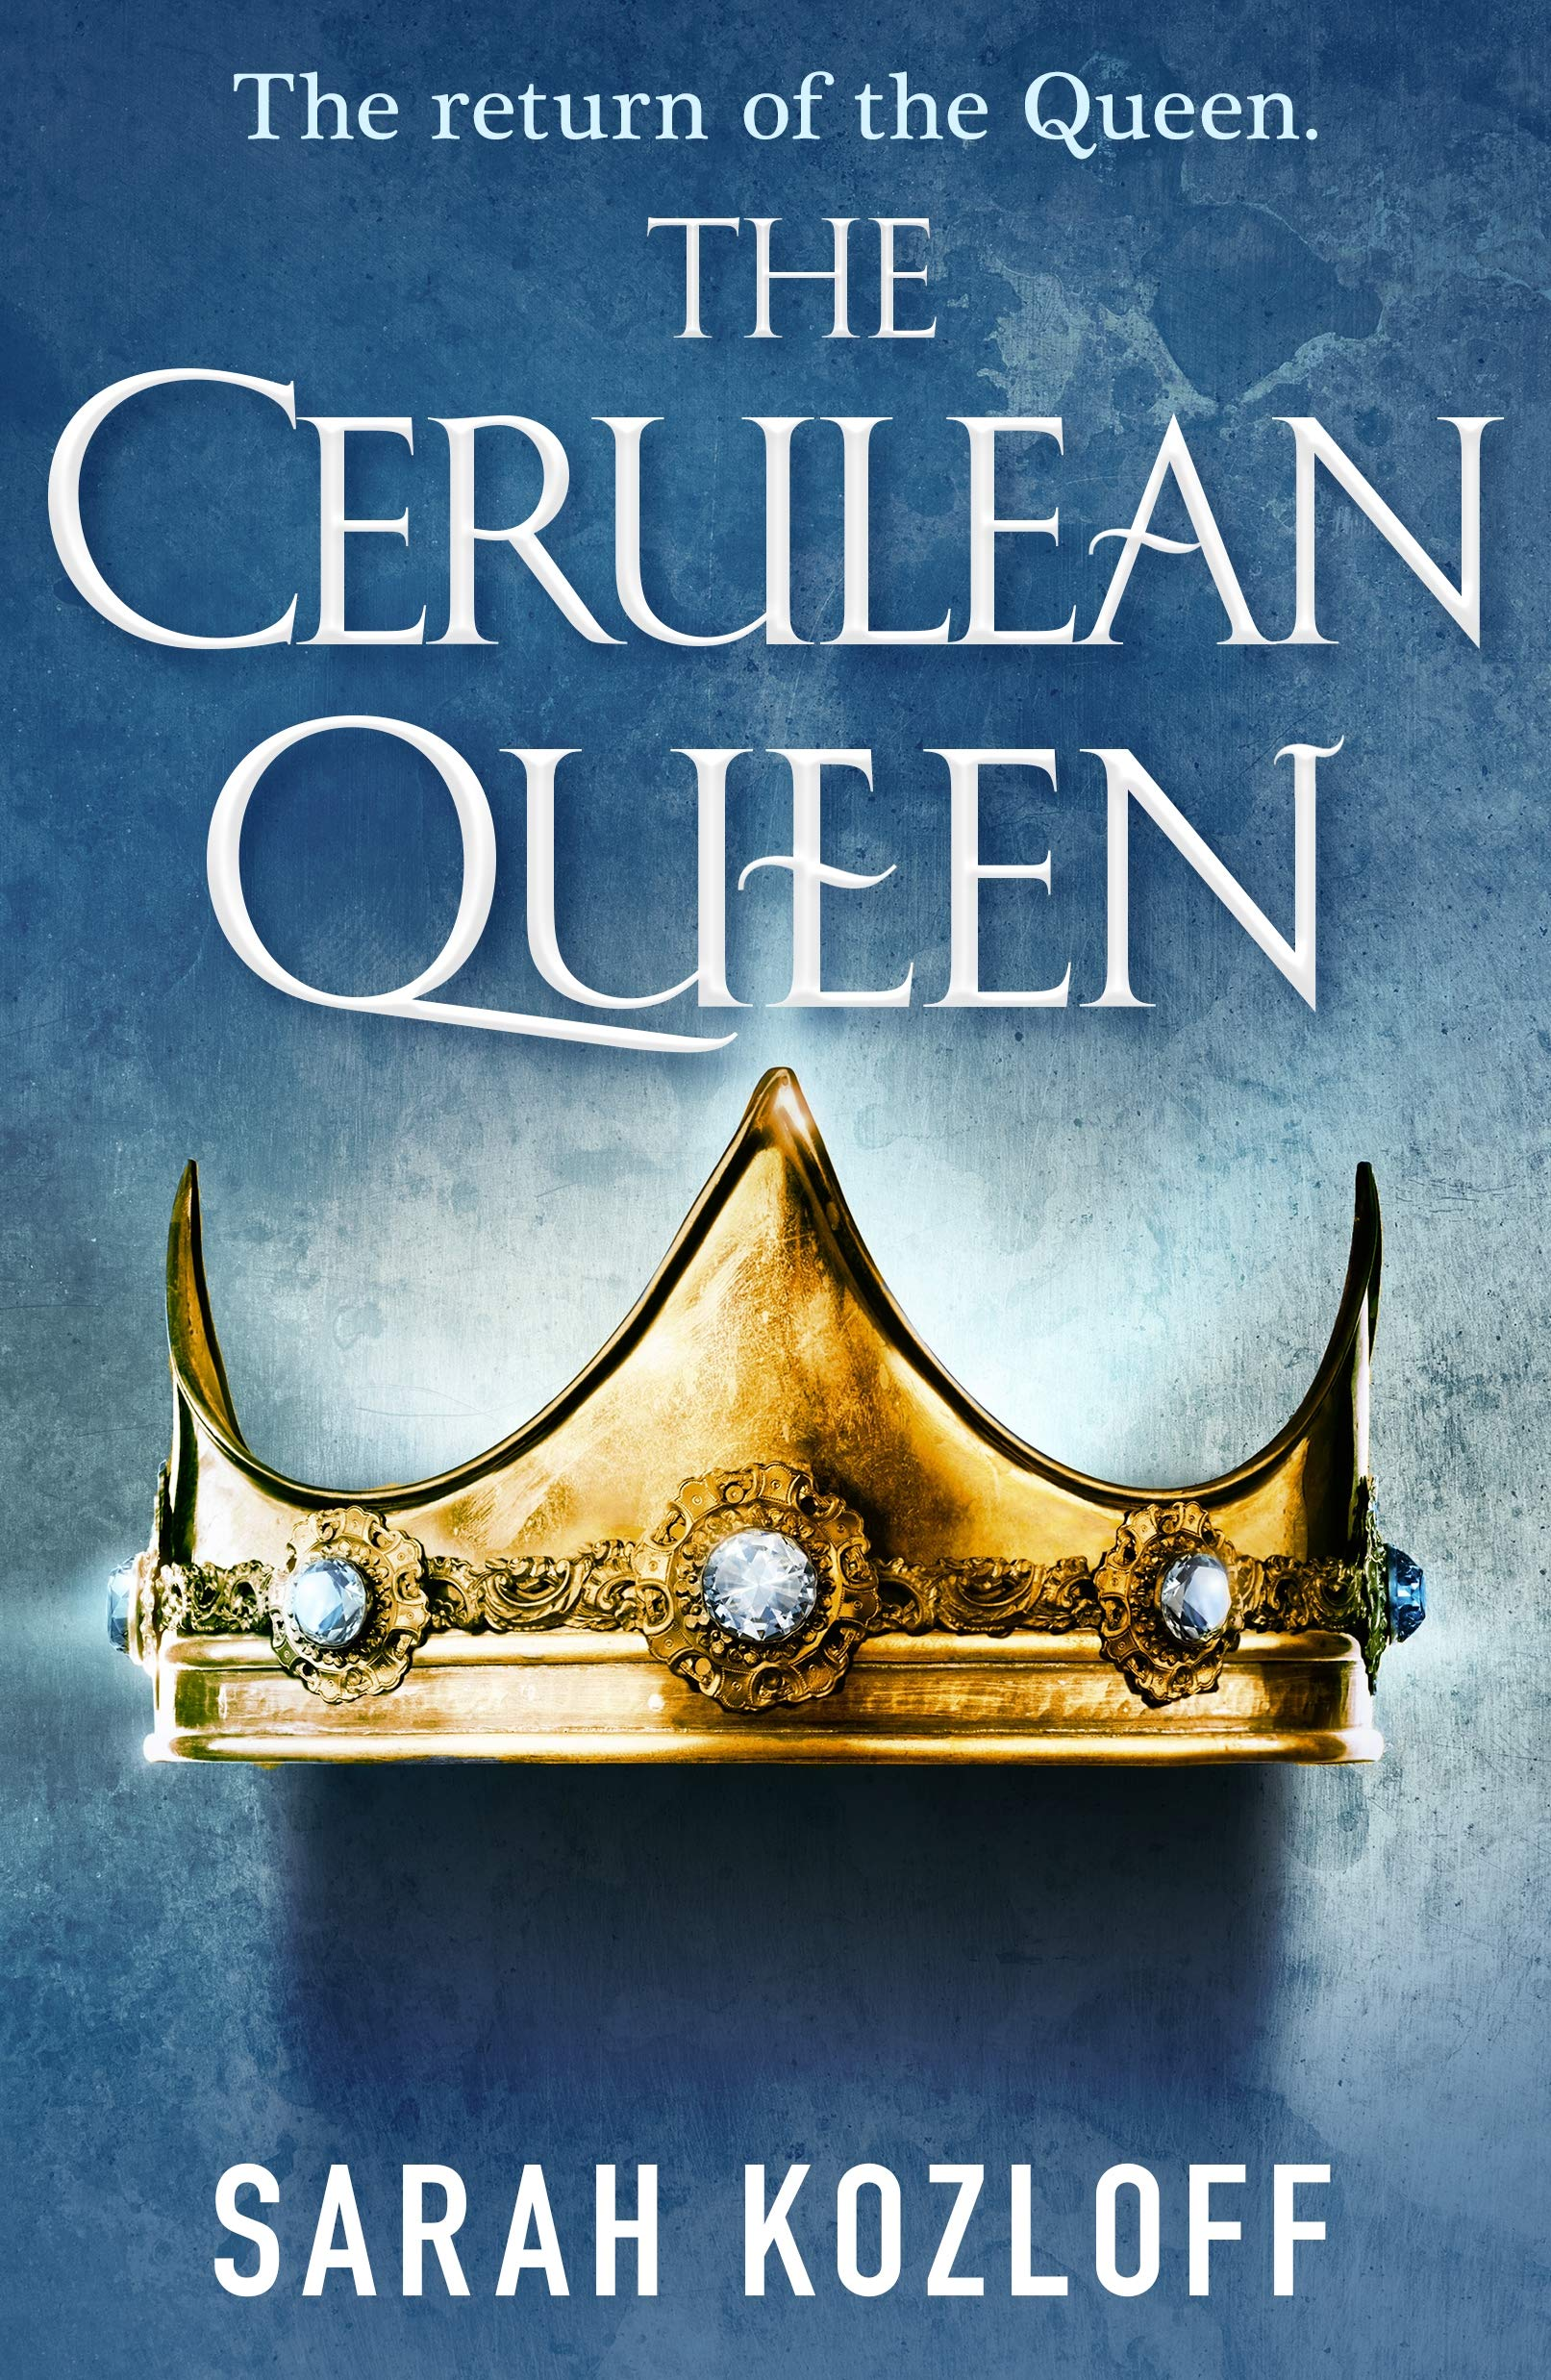 Image result for The Cerulean Queen